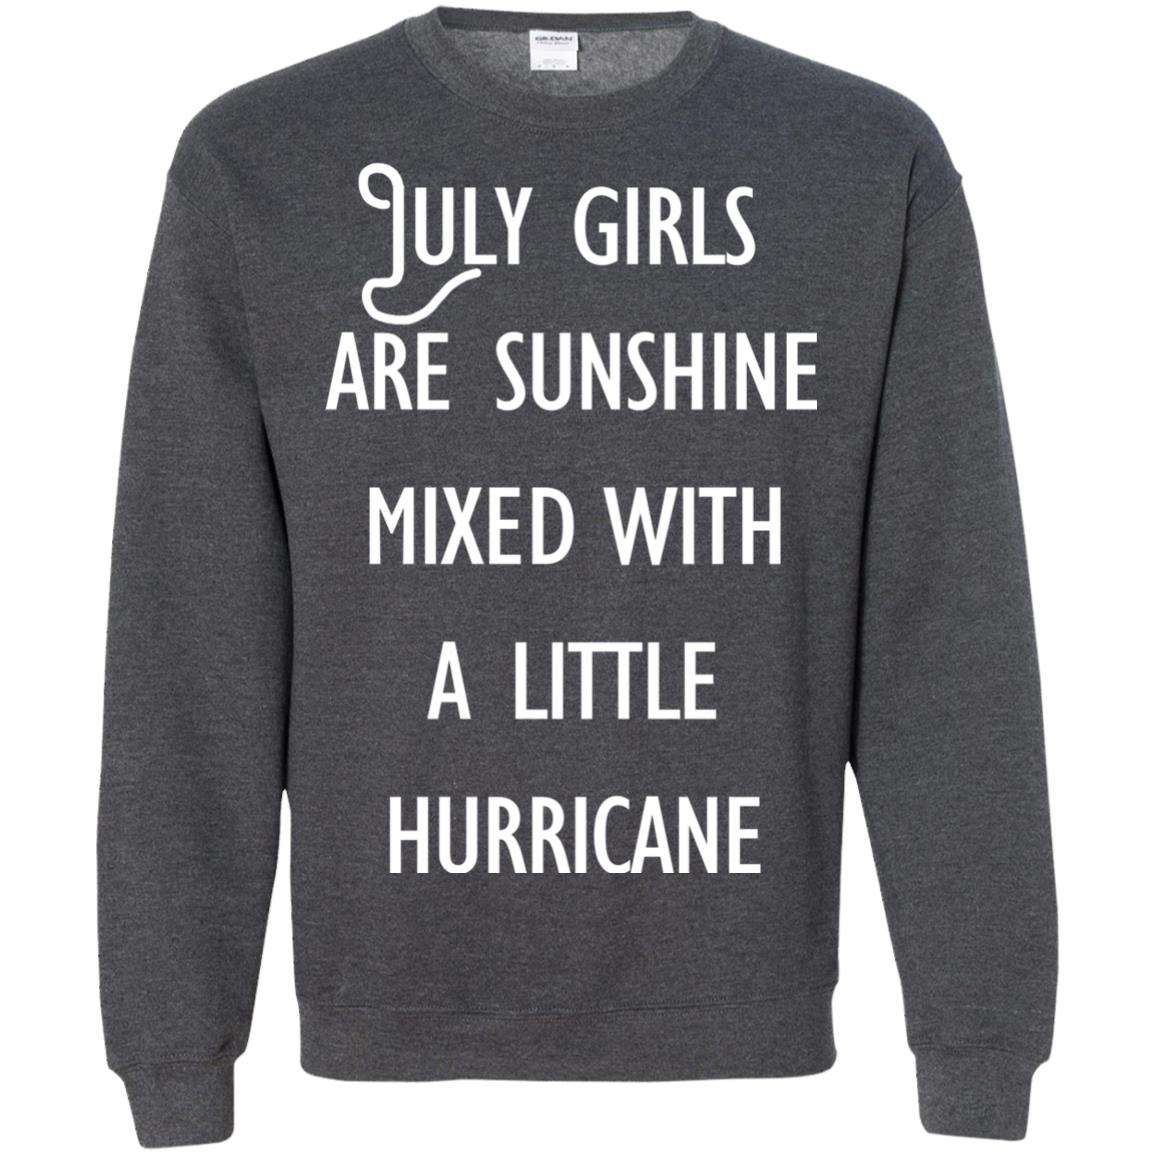 image 166 - July Girls Are Sunshine Mixed With A Little Hurricane T-shirt